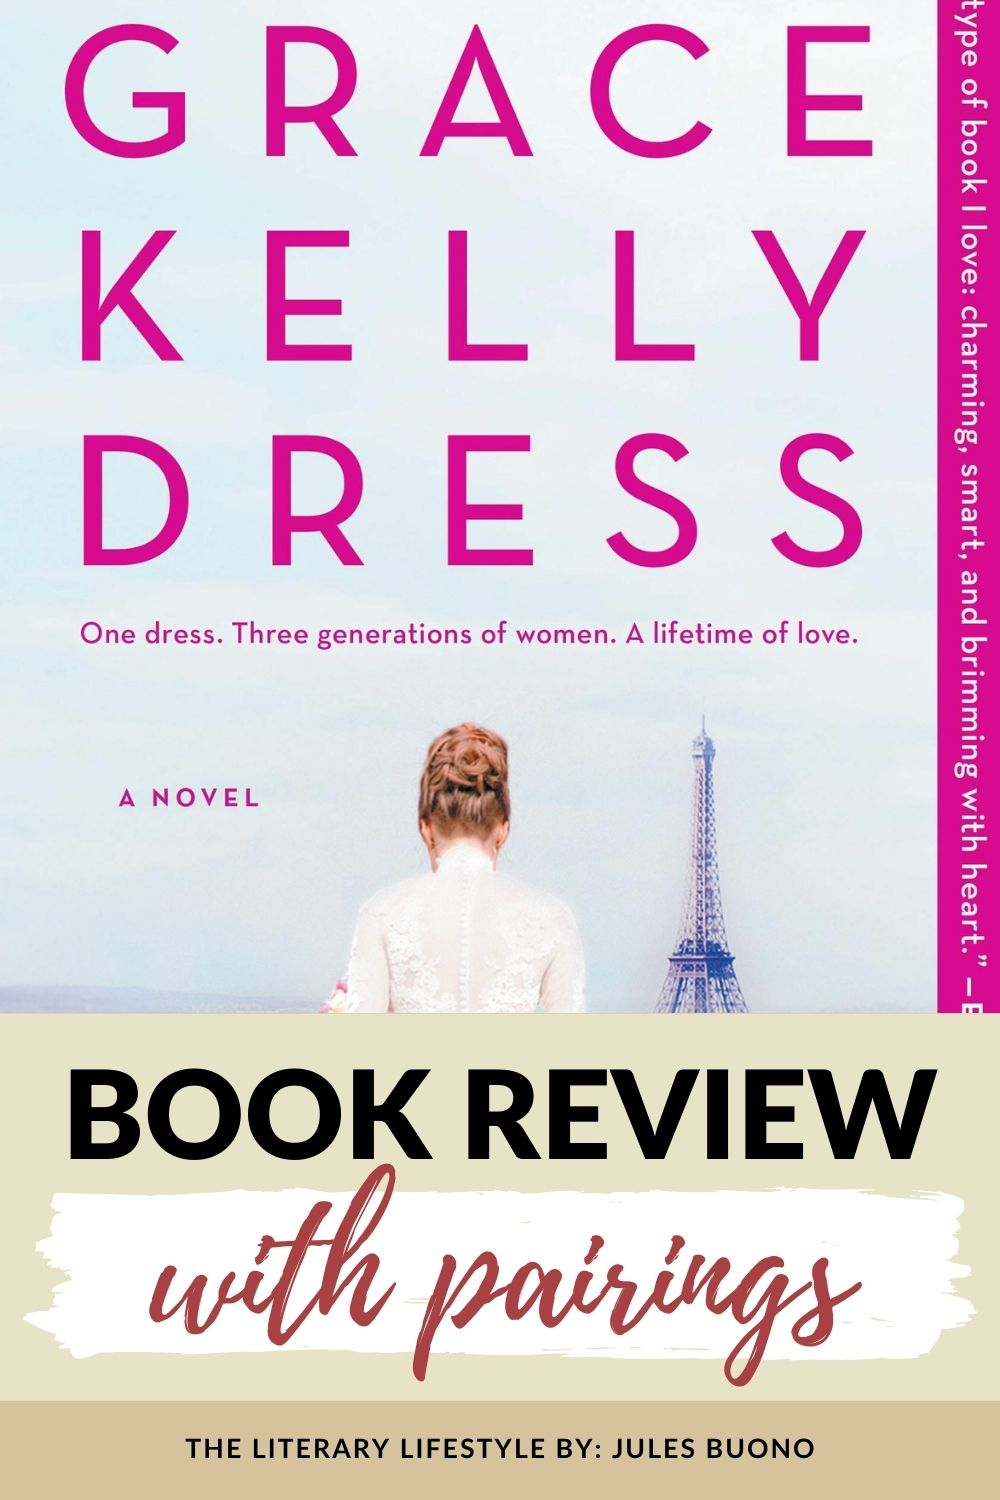 Book Review: The Grace Kelly Dress